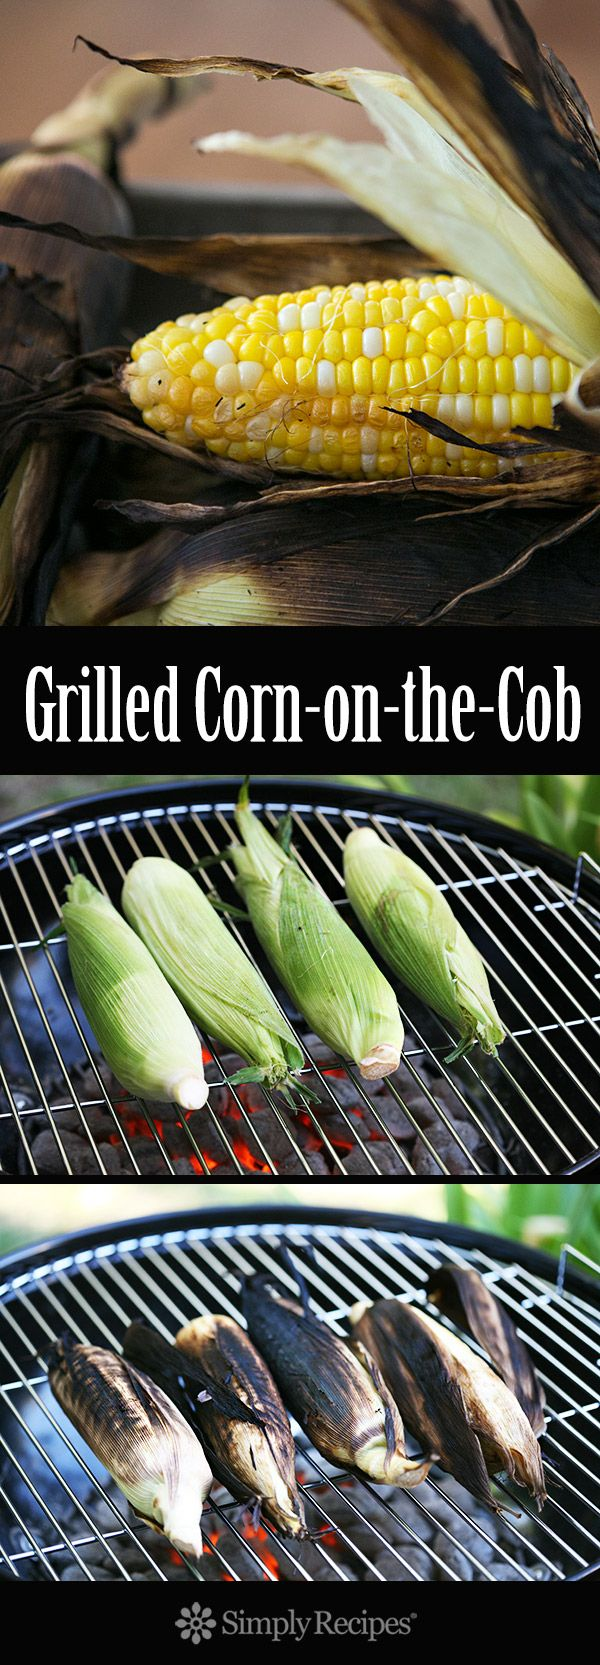 How To Grill Juicy, Tender, Grilled Cornonthecob,